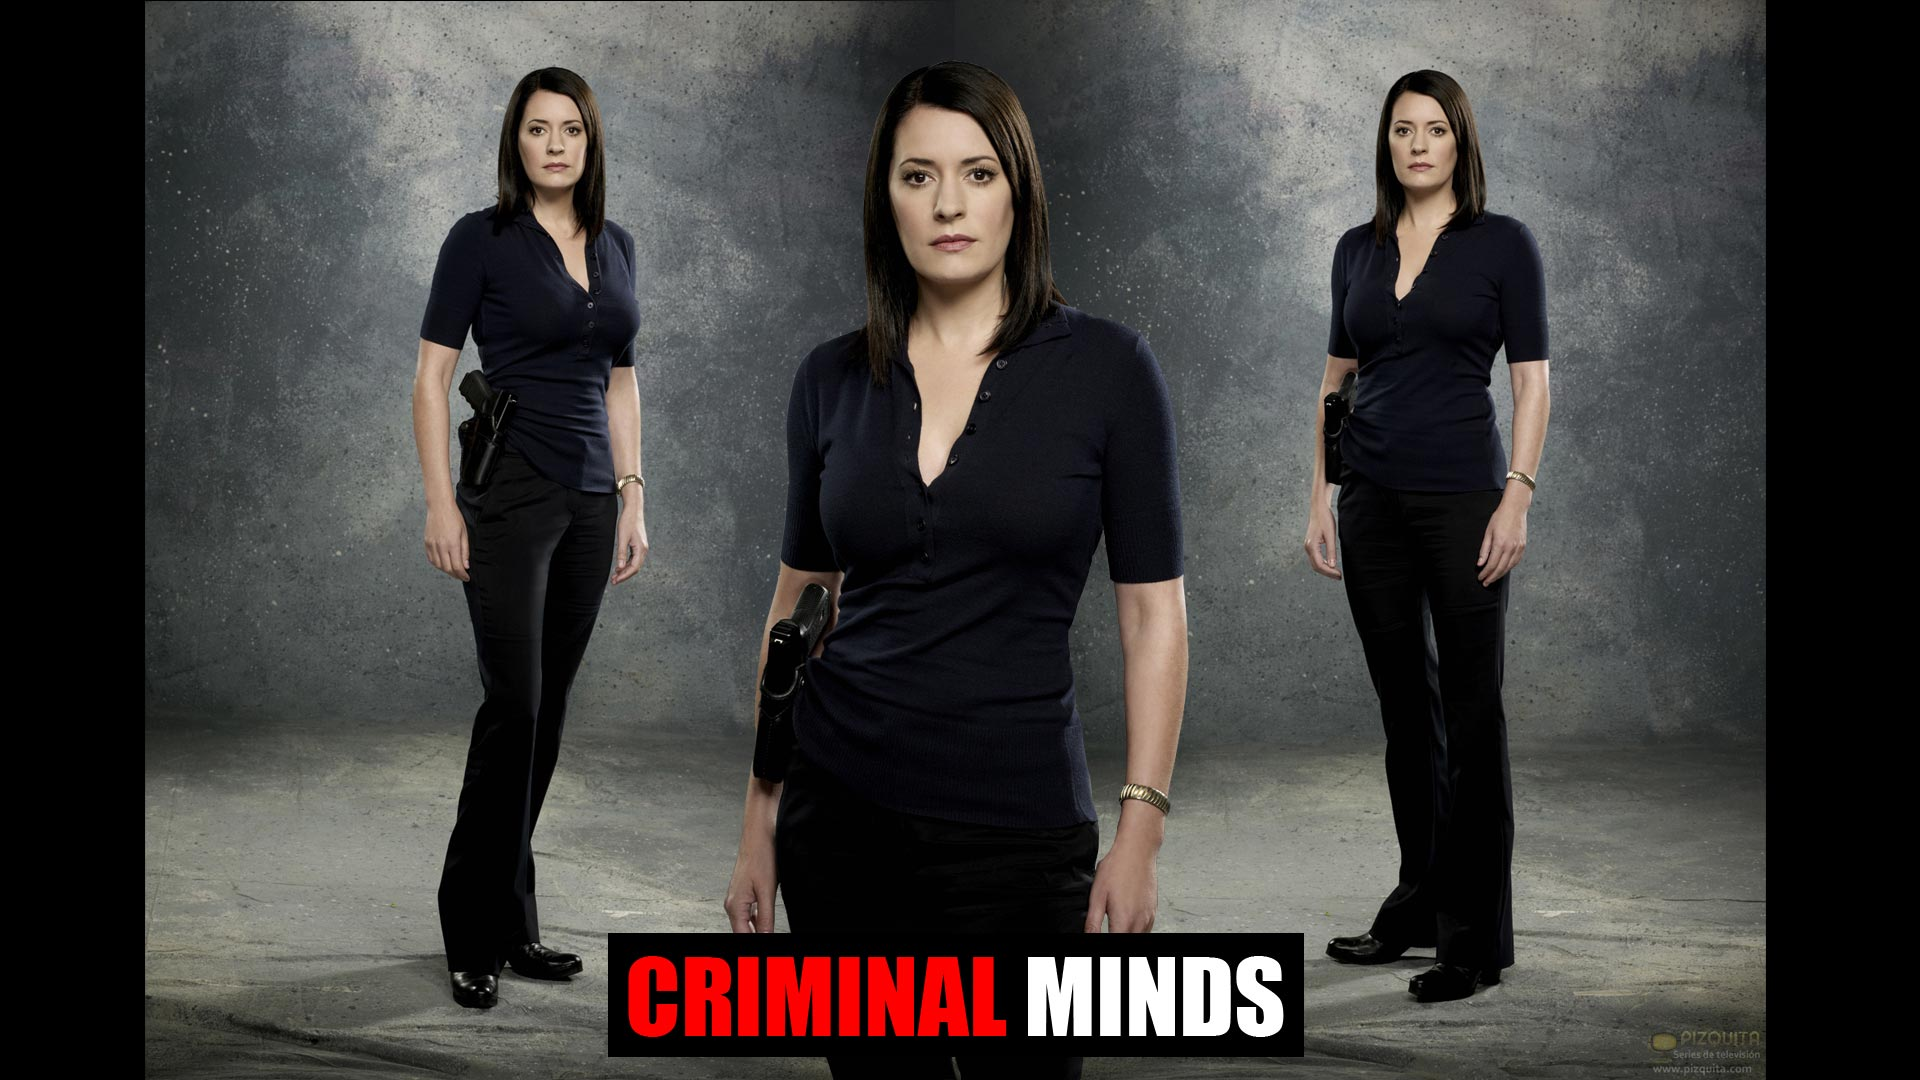 Tv Show Criminal Minds Some New HD Images & Pictures - All ...